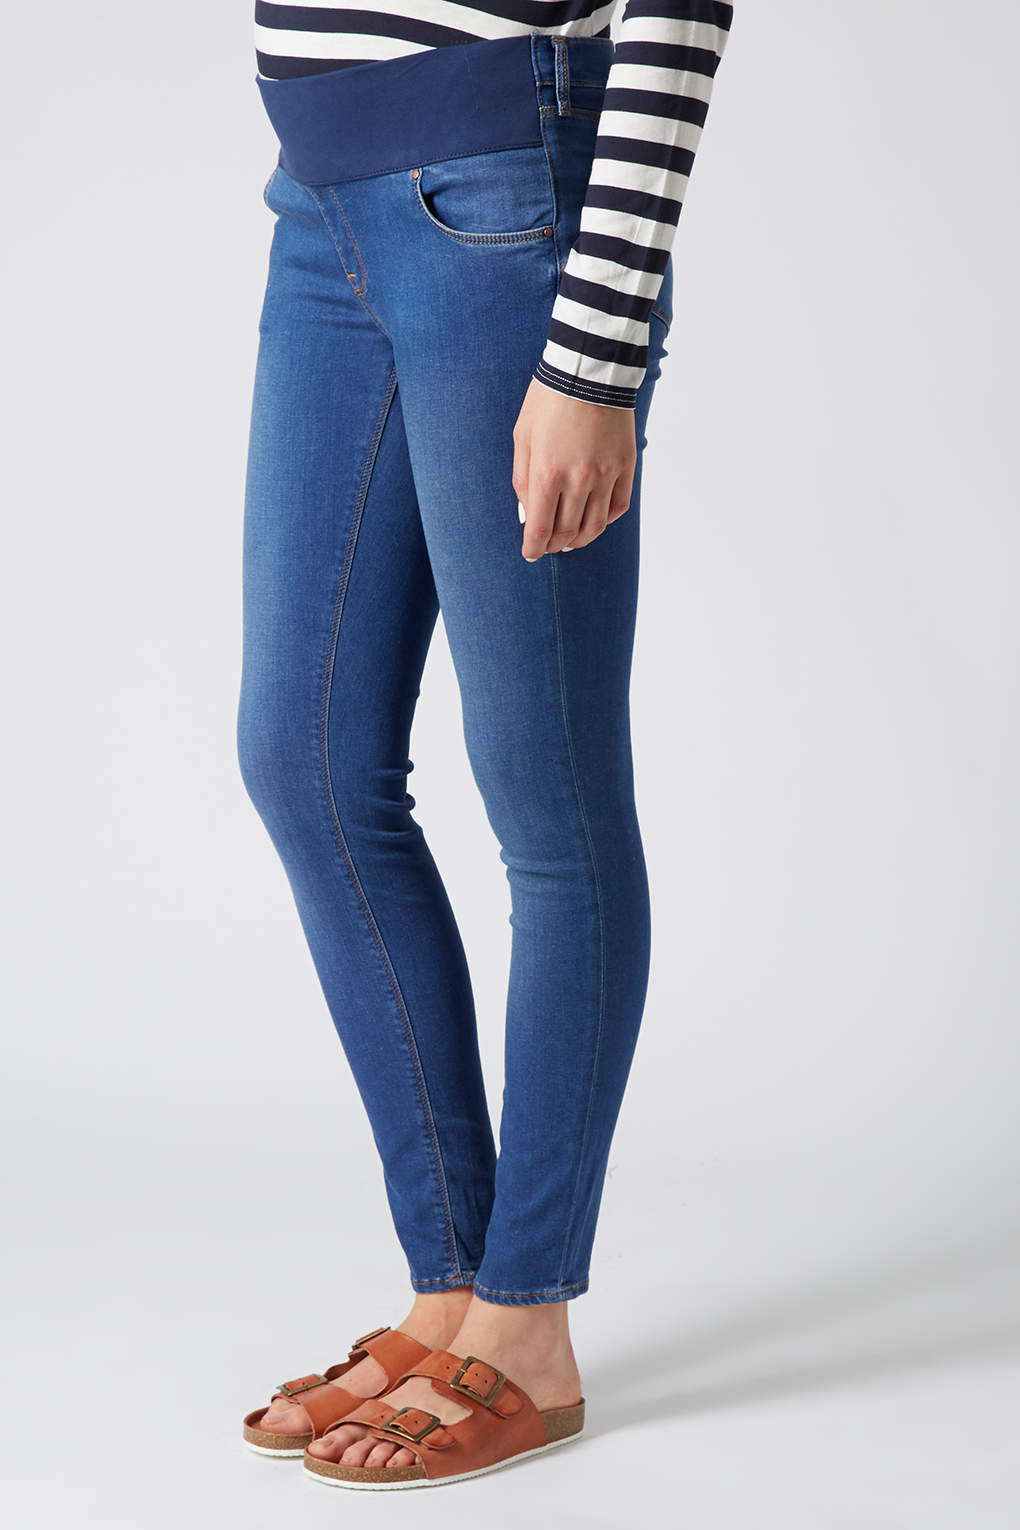 Topshop Maternity Moto Pansy Vintage Leigh Jeans in Blue | Lyst